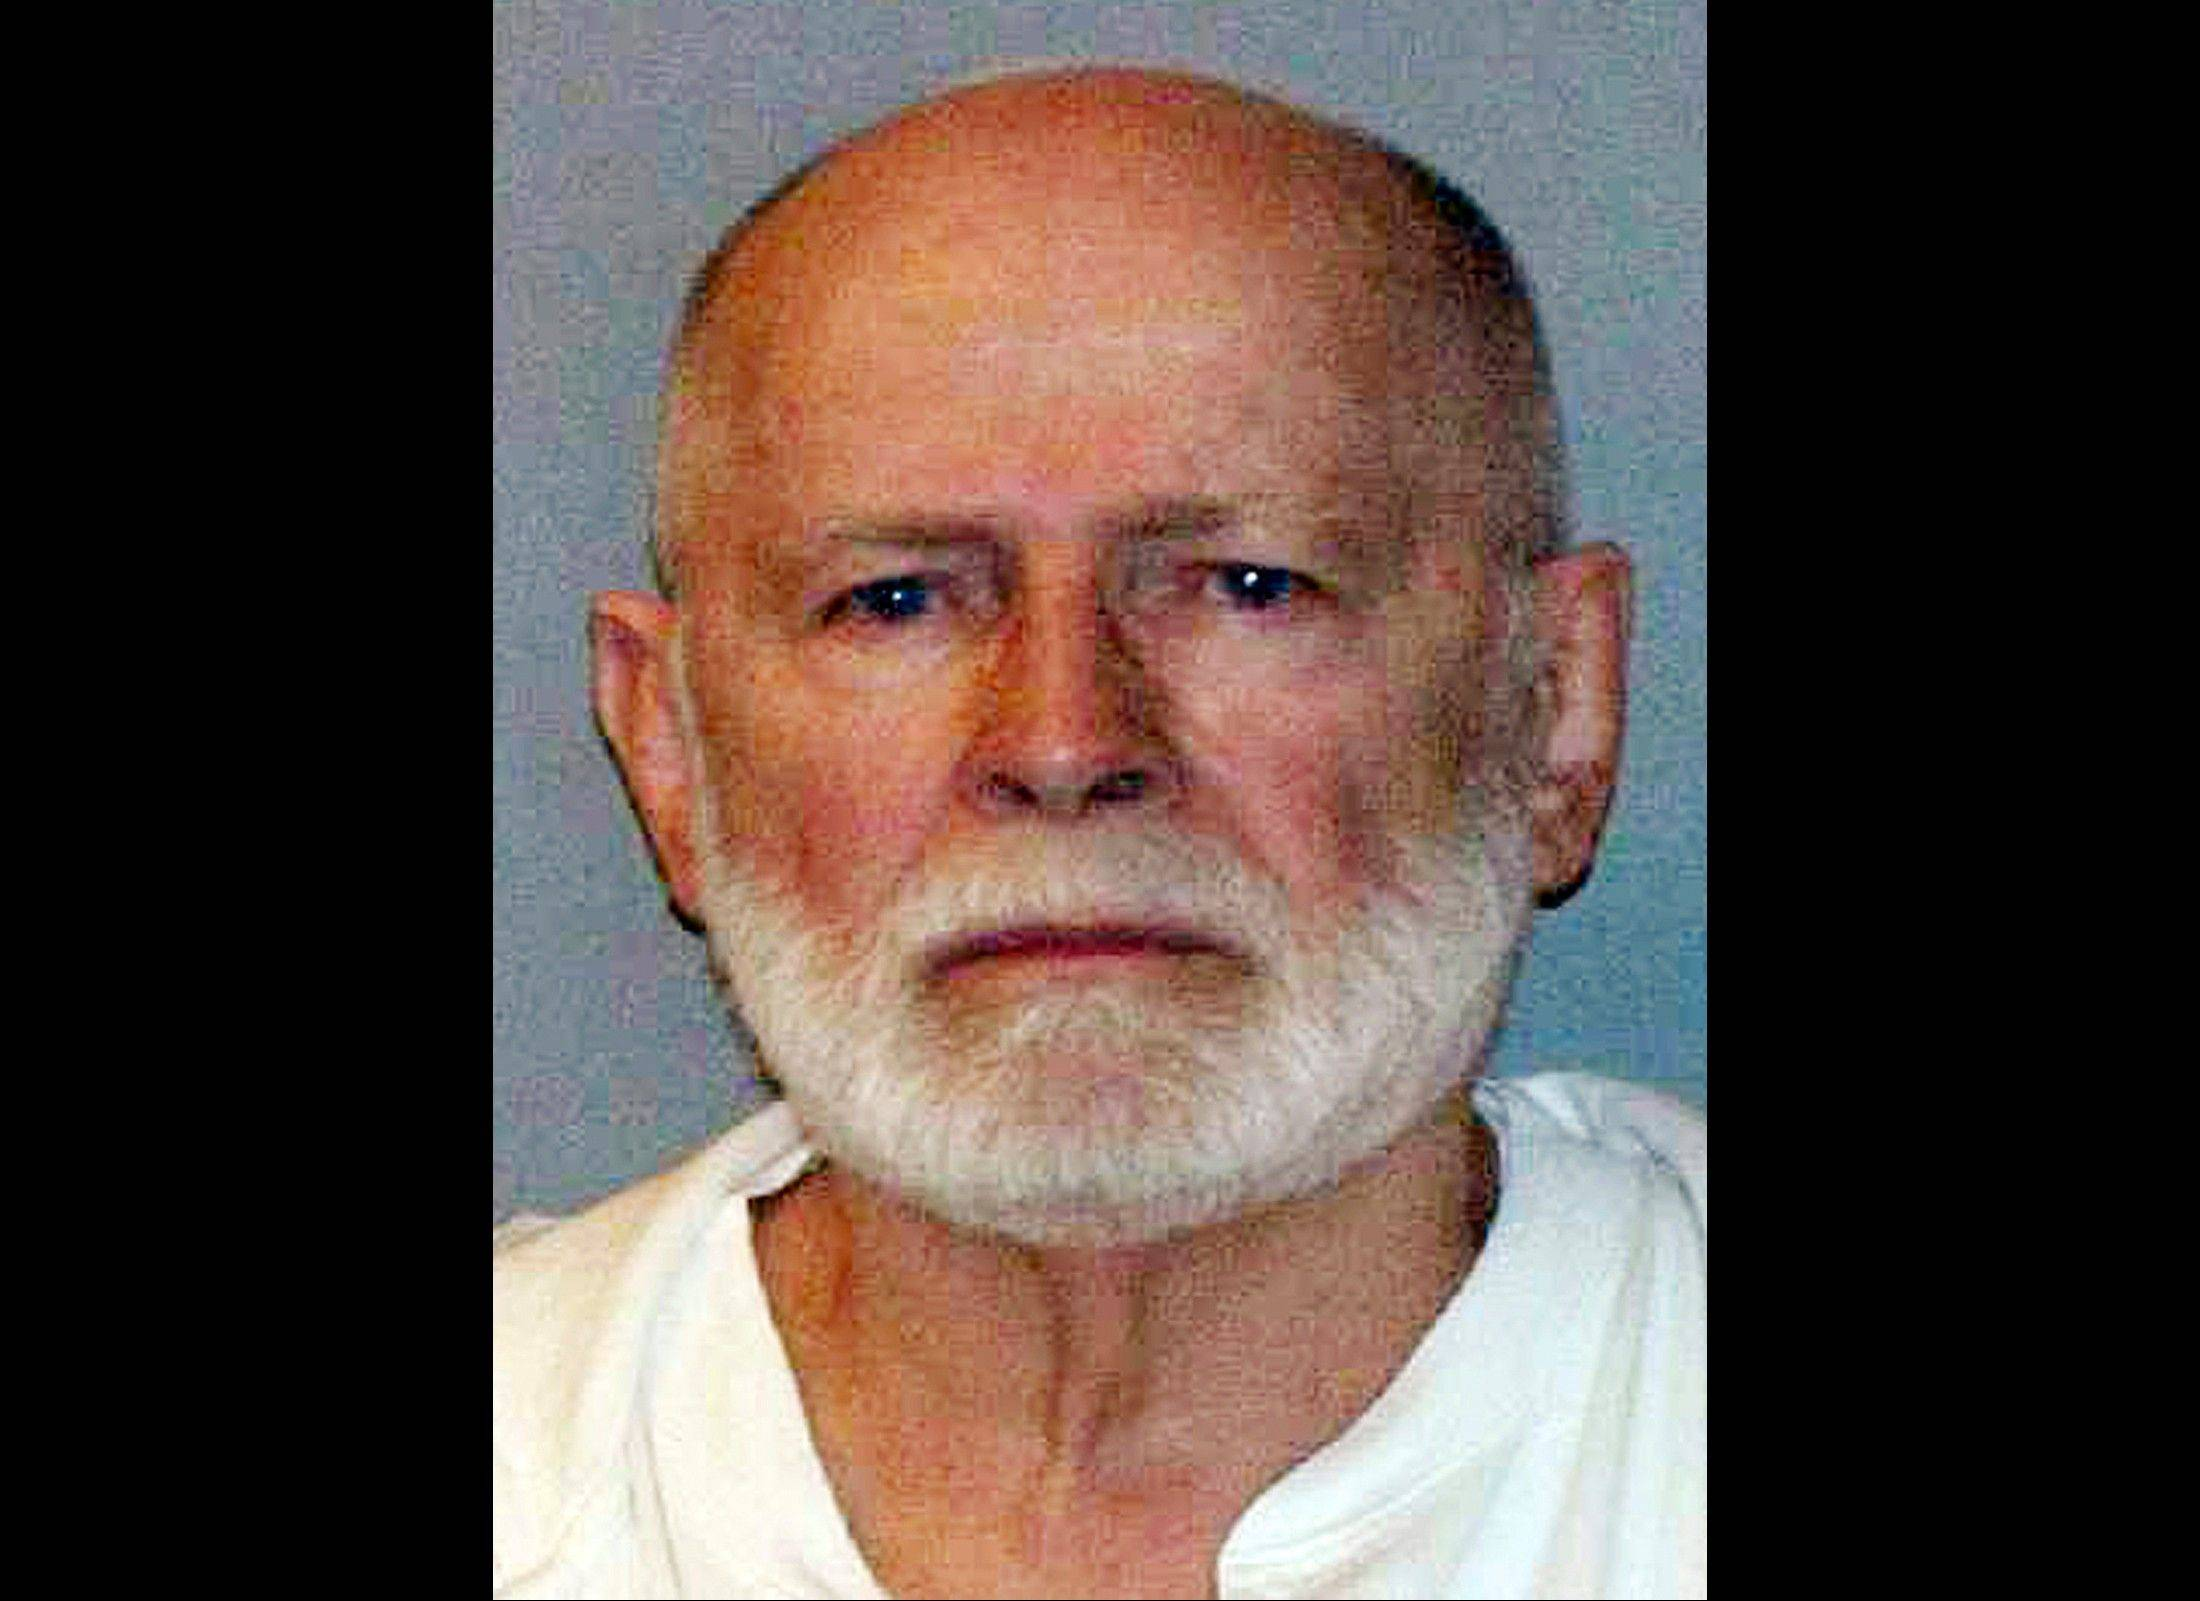 This June 23, 2011 booking file photo provided by the U.S. Marshals Service shows James �Whitey� Bulger, who fled Boston in 1994 and was captured 2011 in Santa Monica, Calif., after 16 years on the run. A jury found Bulger guilty on several counts of murder, racketeering and conspiracy Monday, Aug. 12, 2013 in federal court in Boston.